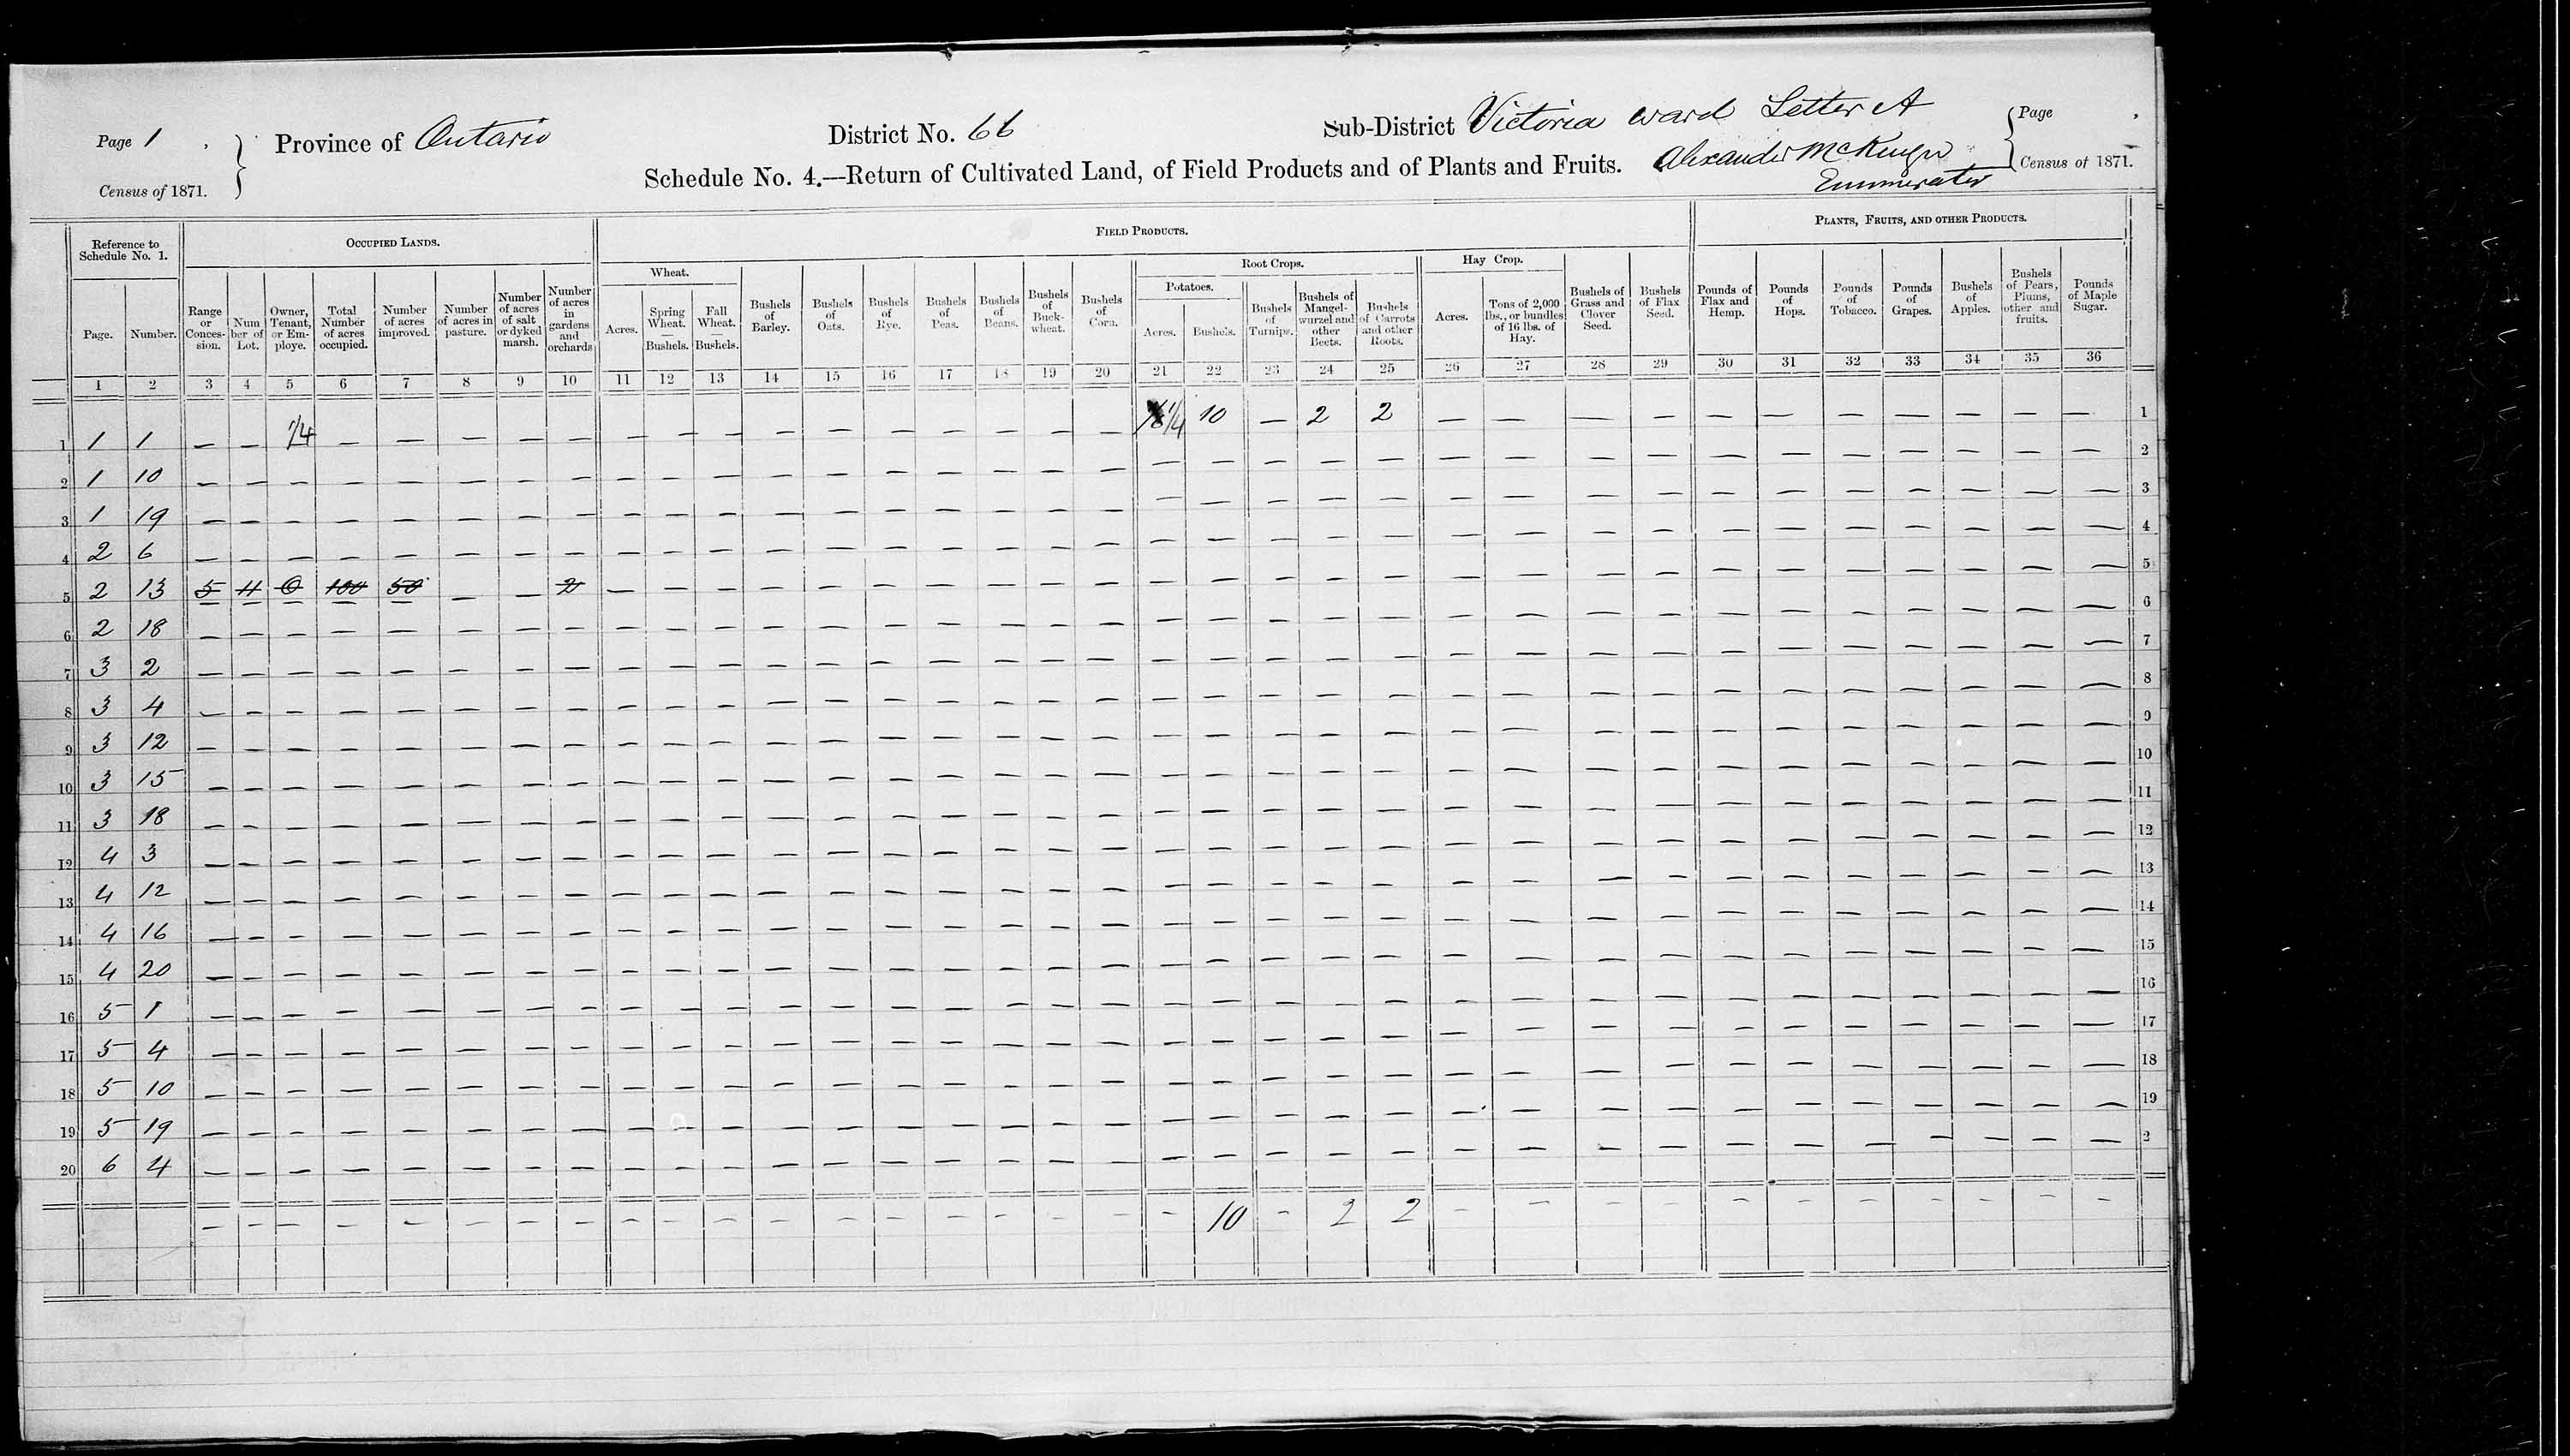 Title: Census of Canada, 1871 - Mikan Number: 142105 - Microform: c-9999